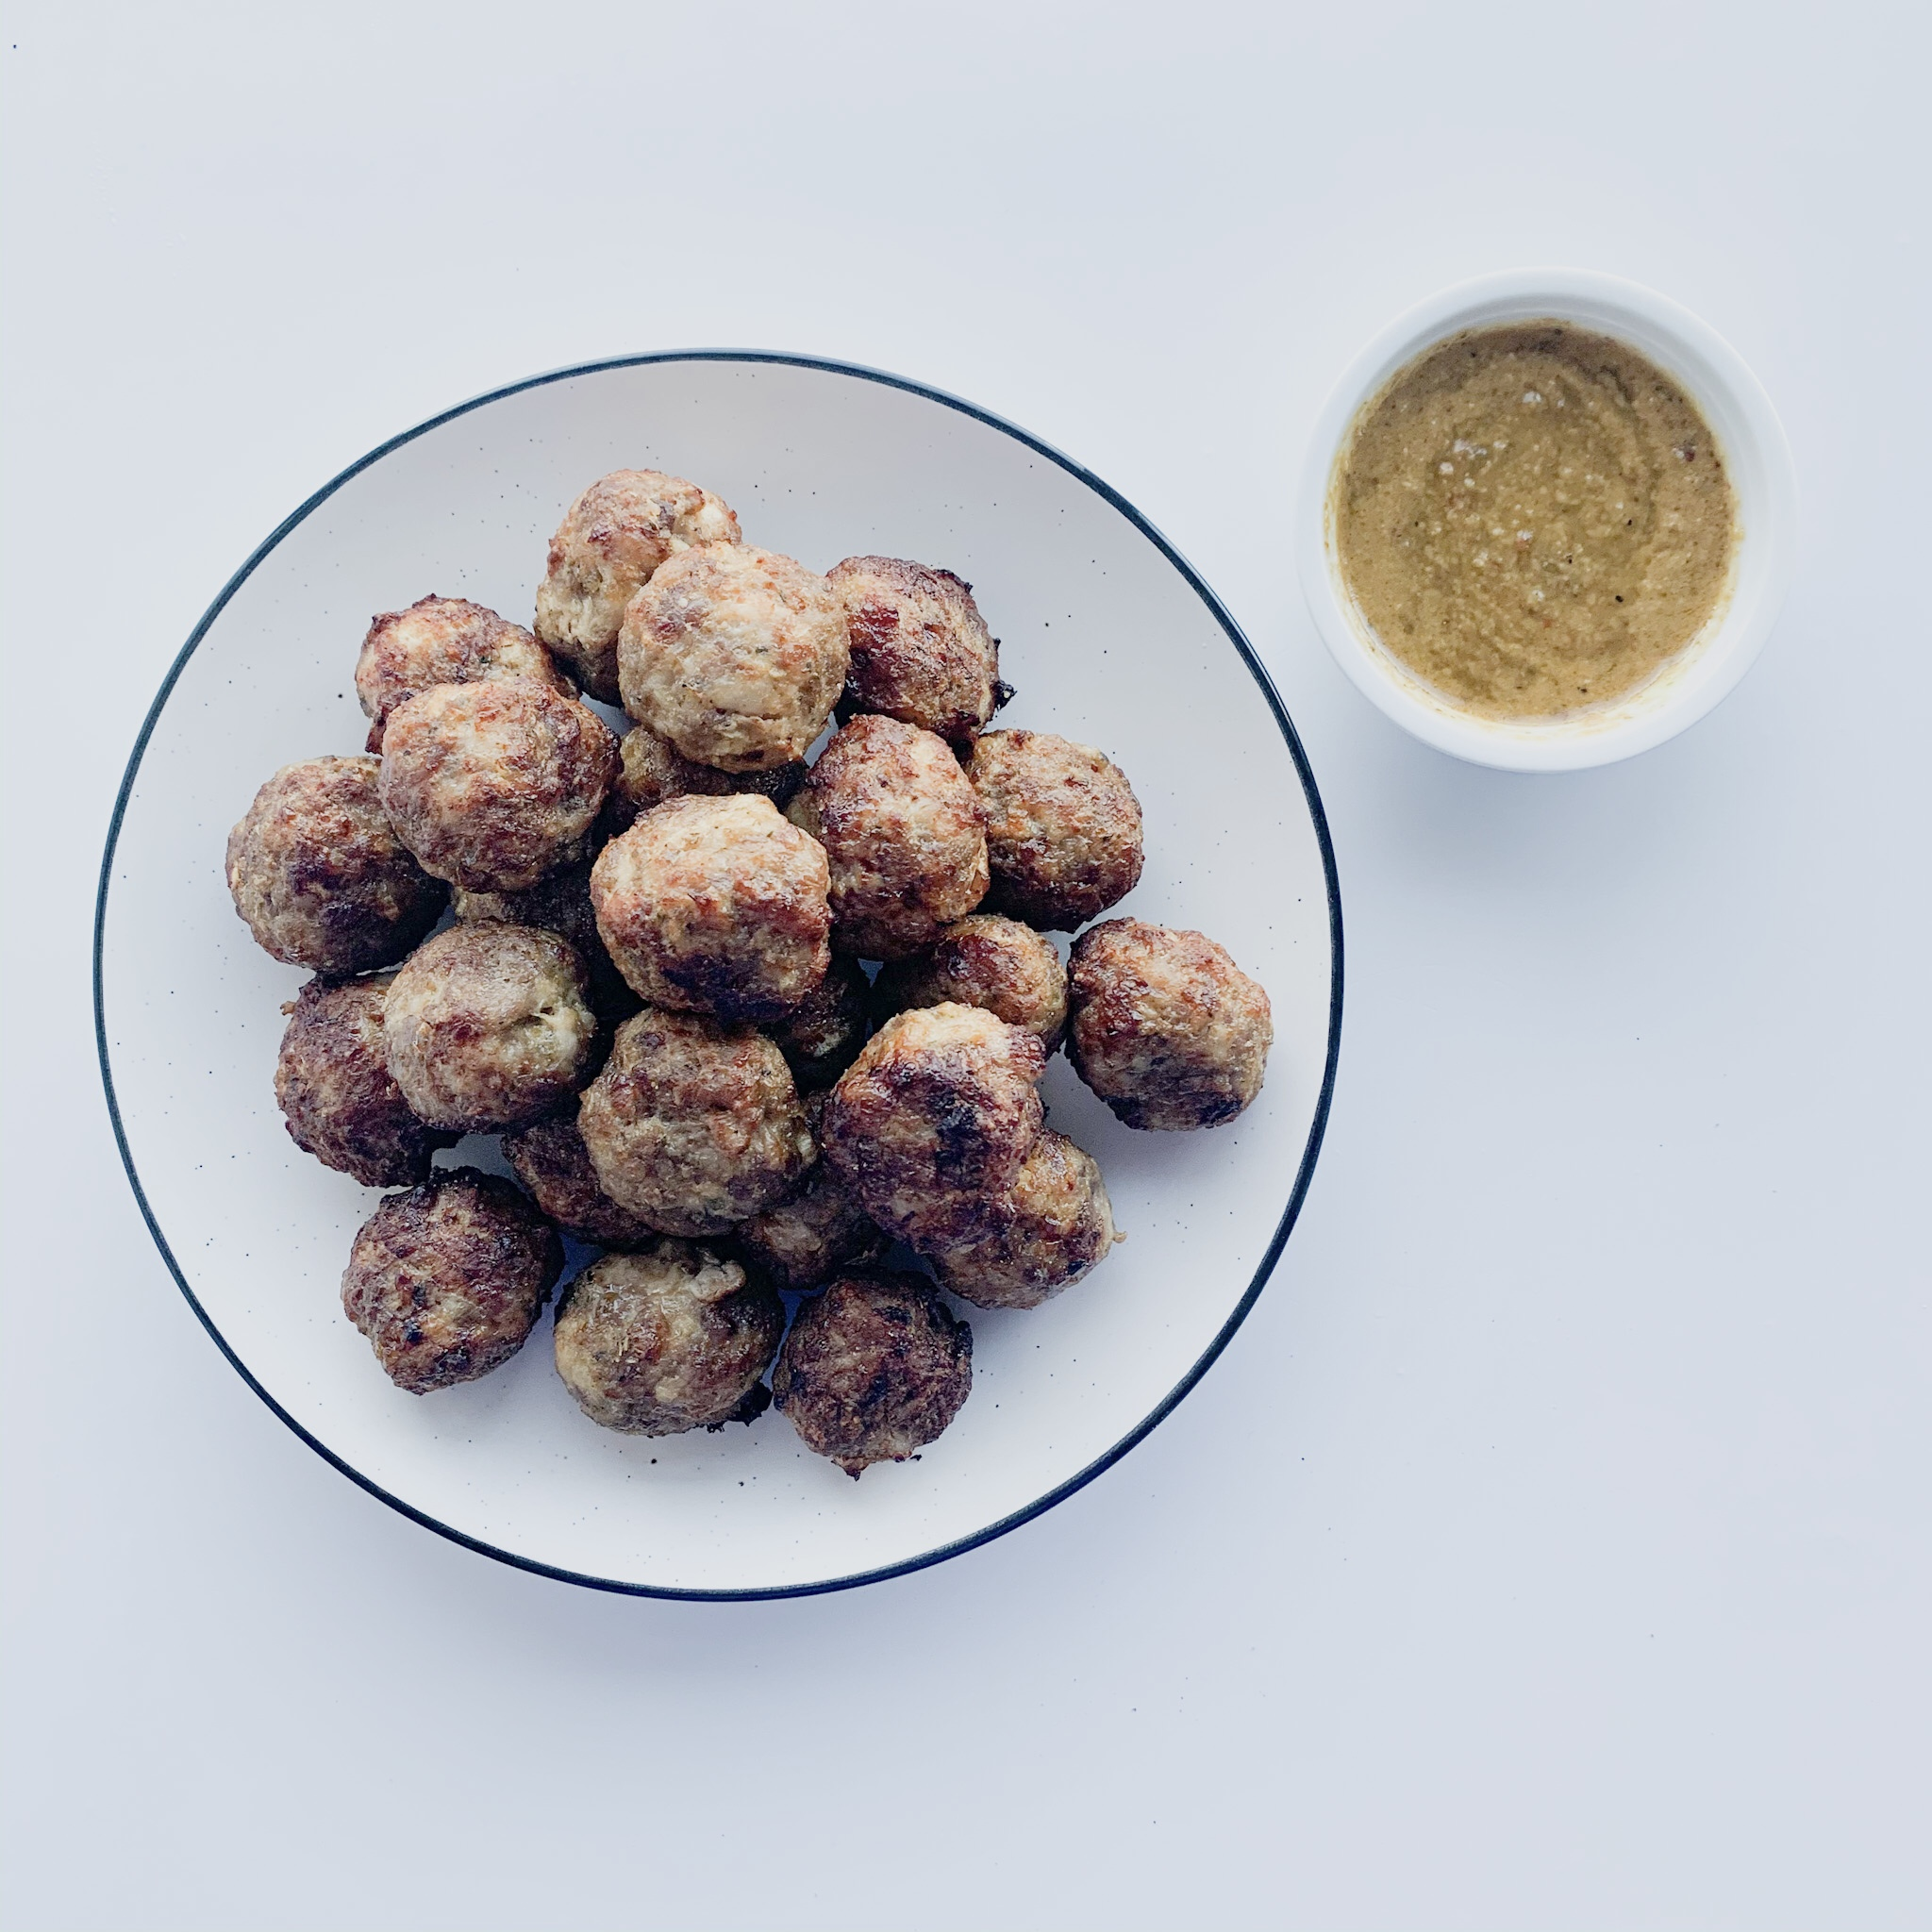 This easy gluten-free recipe for low carb air fry meatballs uses simple ingredients.